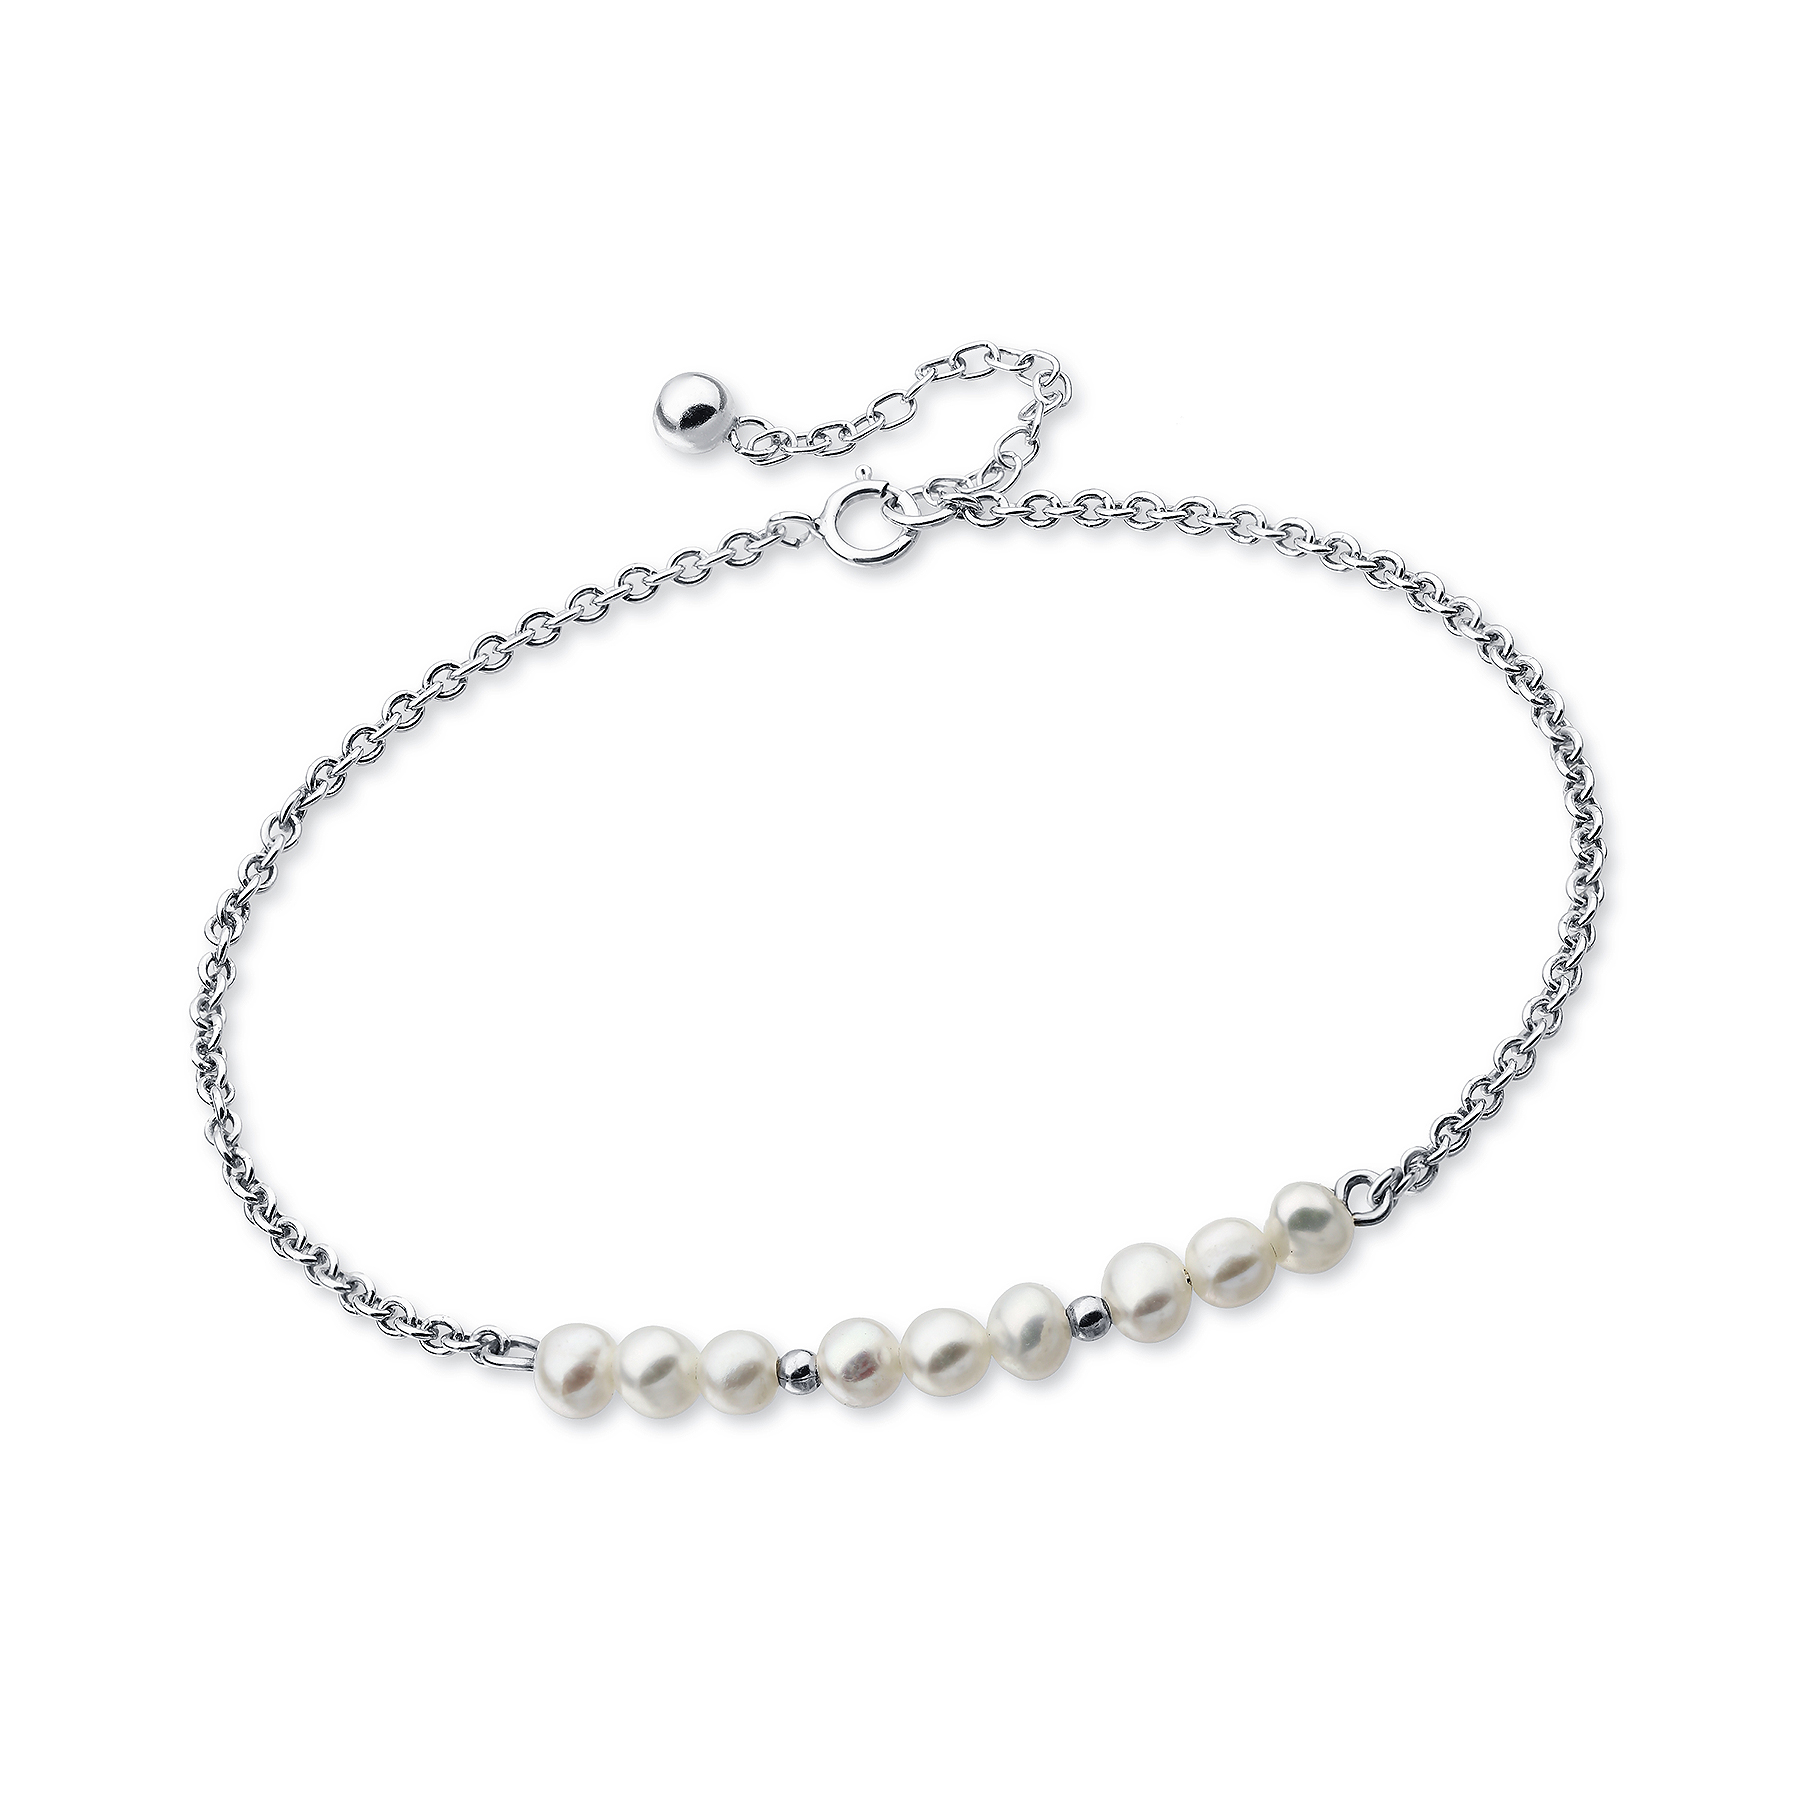 382-4264 - 925 Sterling Silver Bracelet Beaded With Fresh Water Pearls